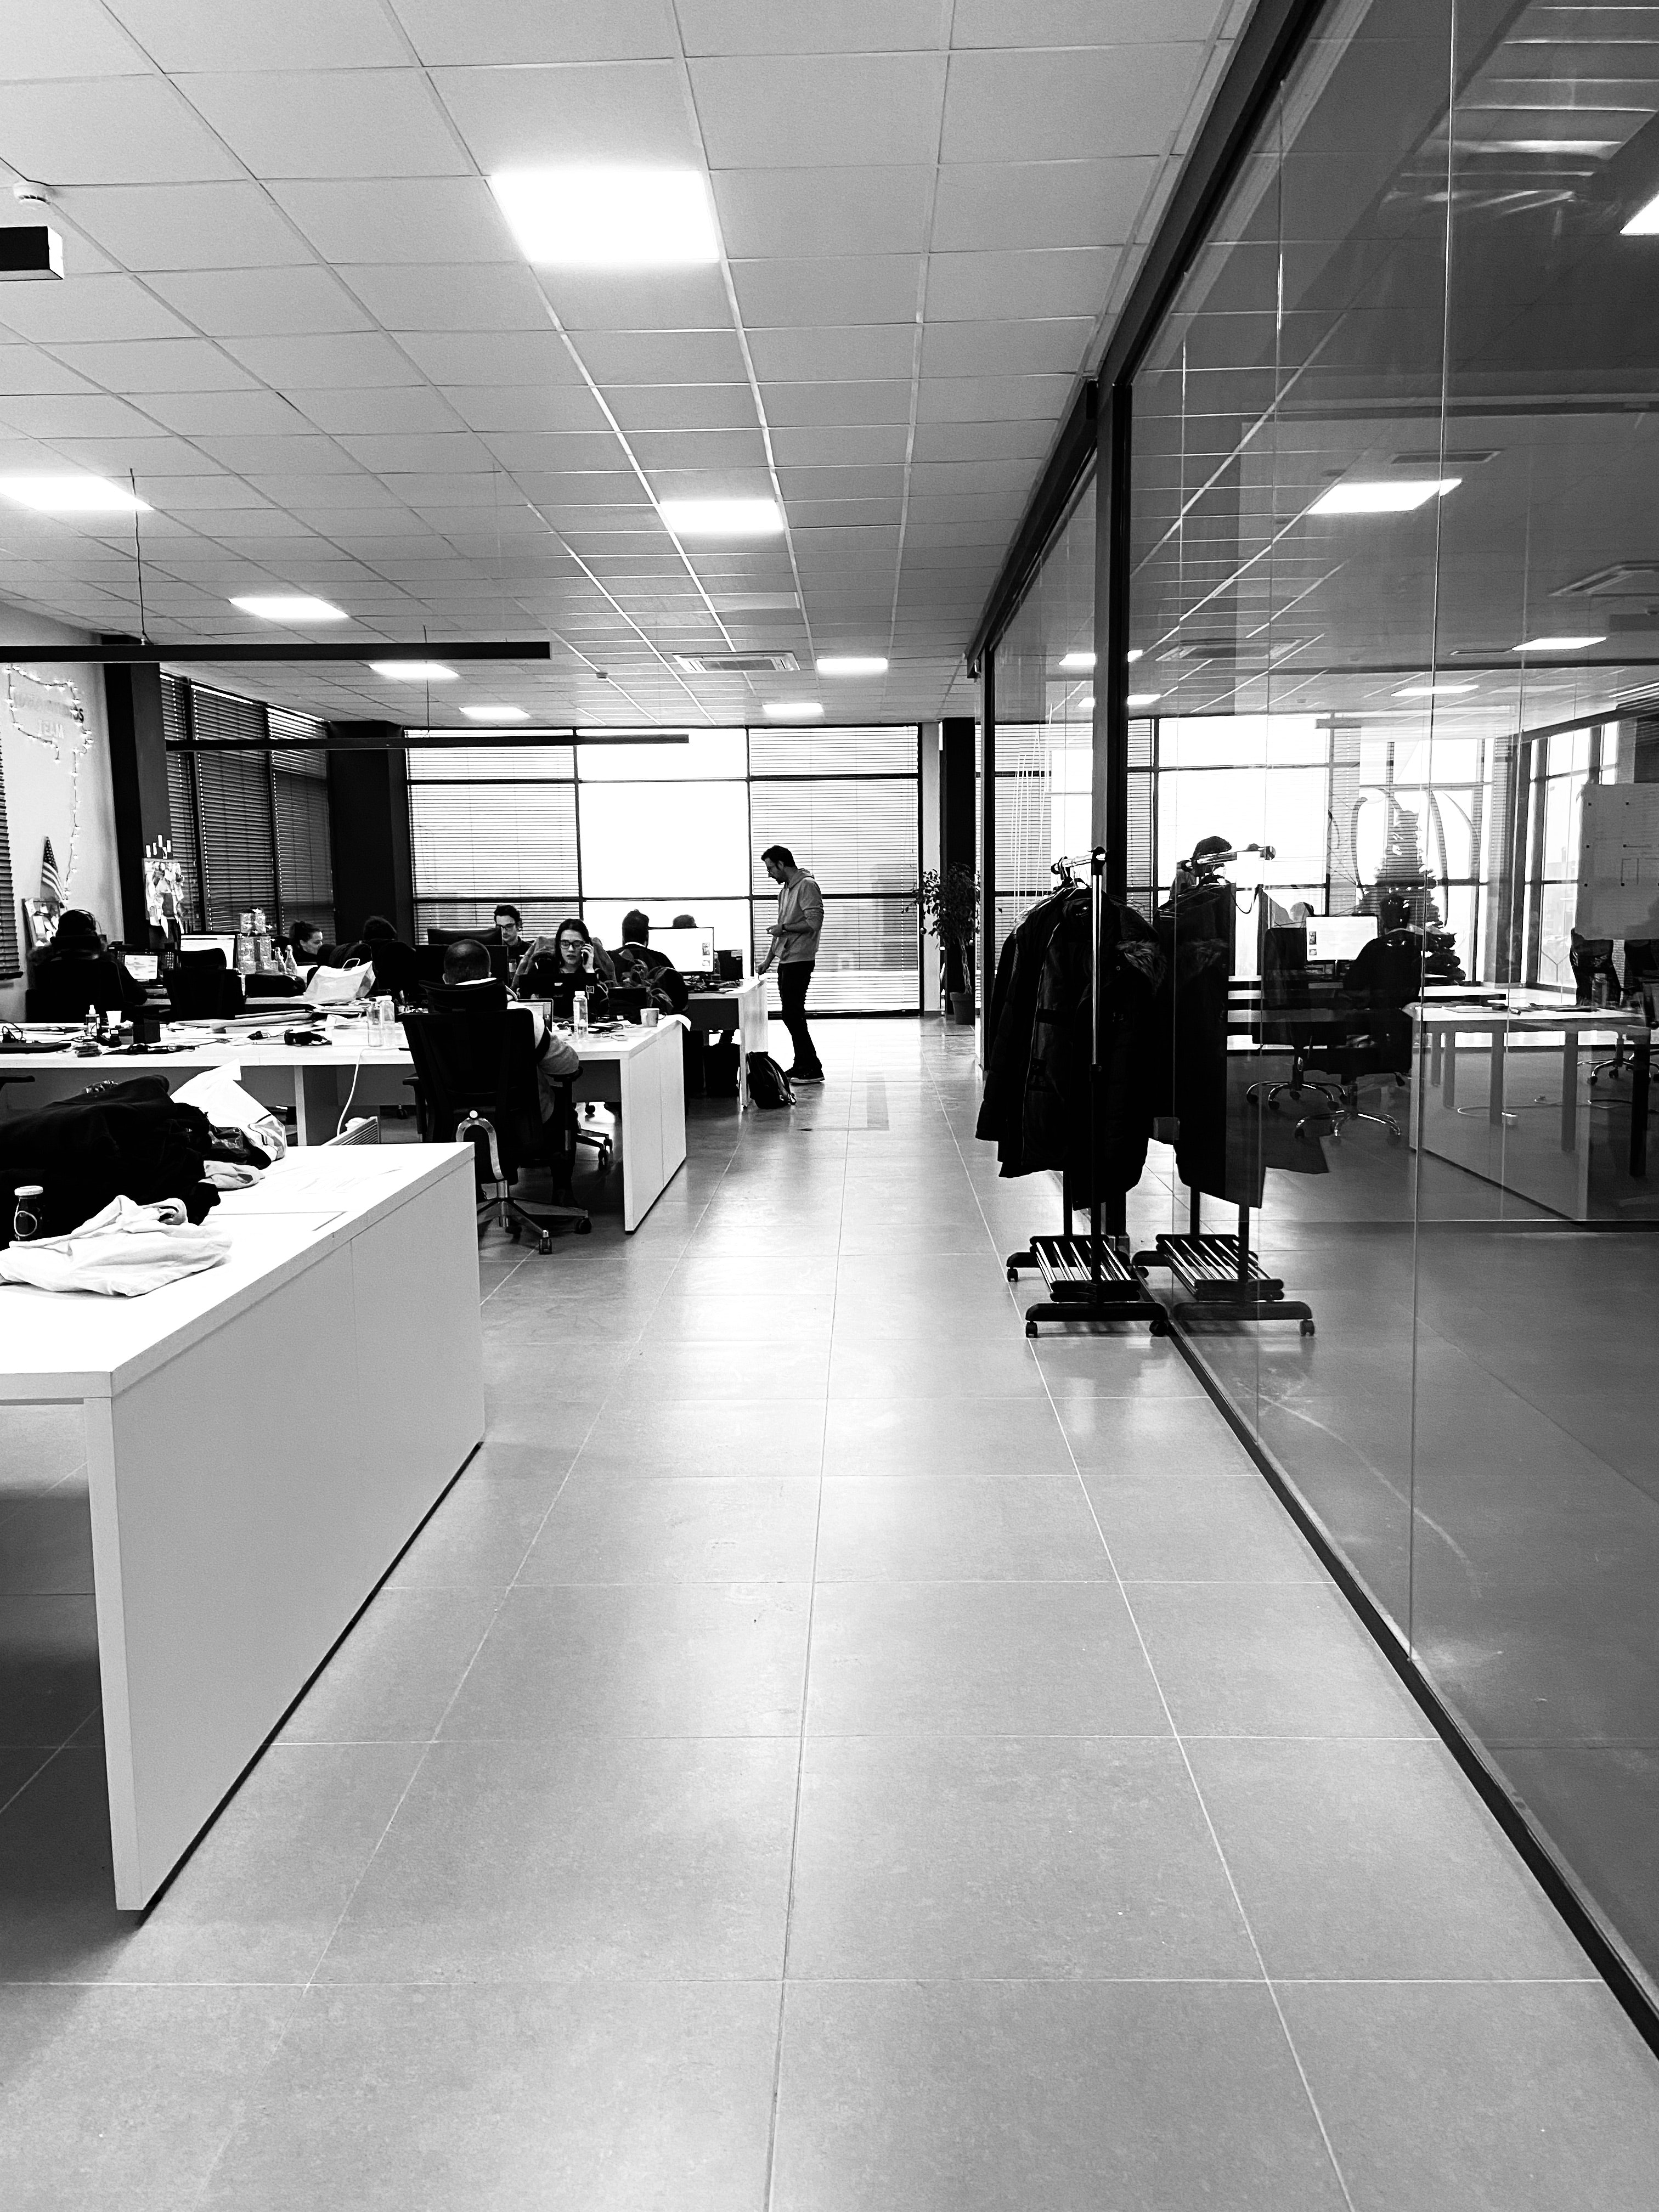 Black and white image of an office entrance